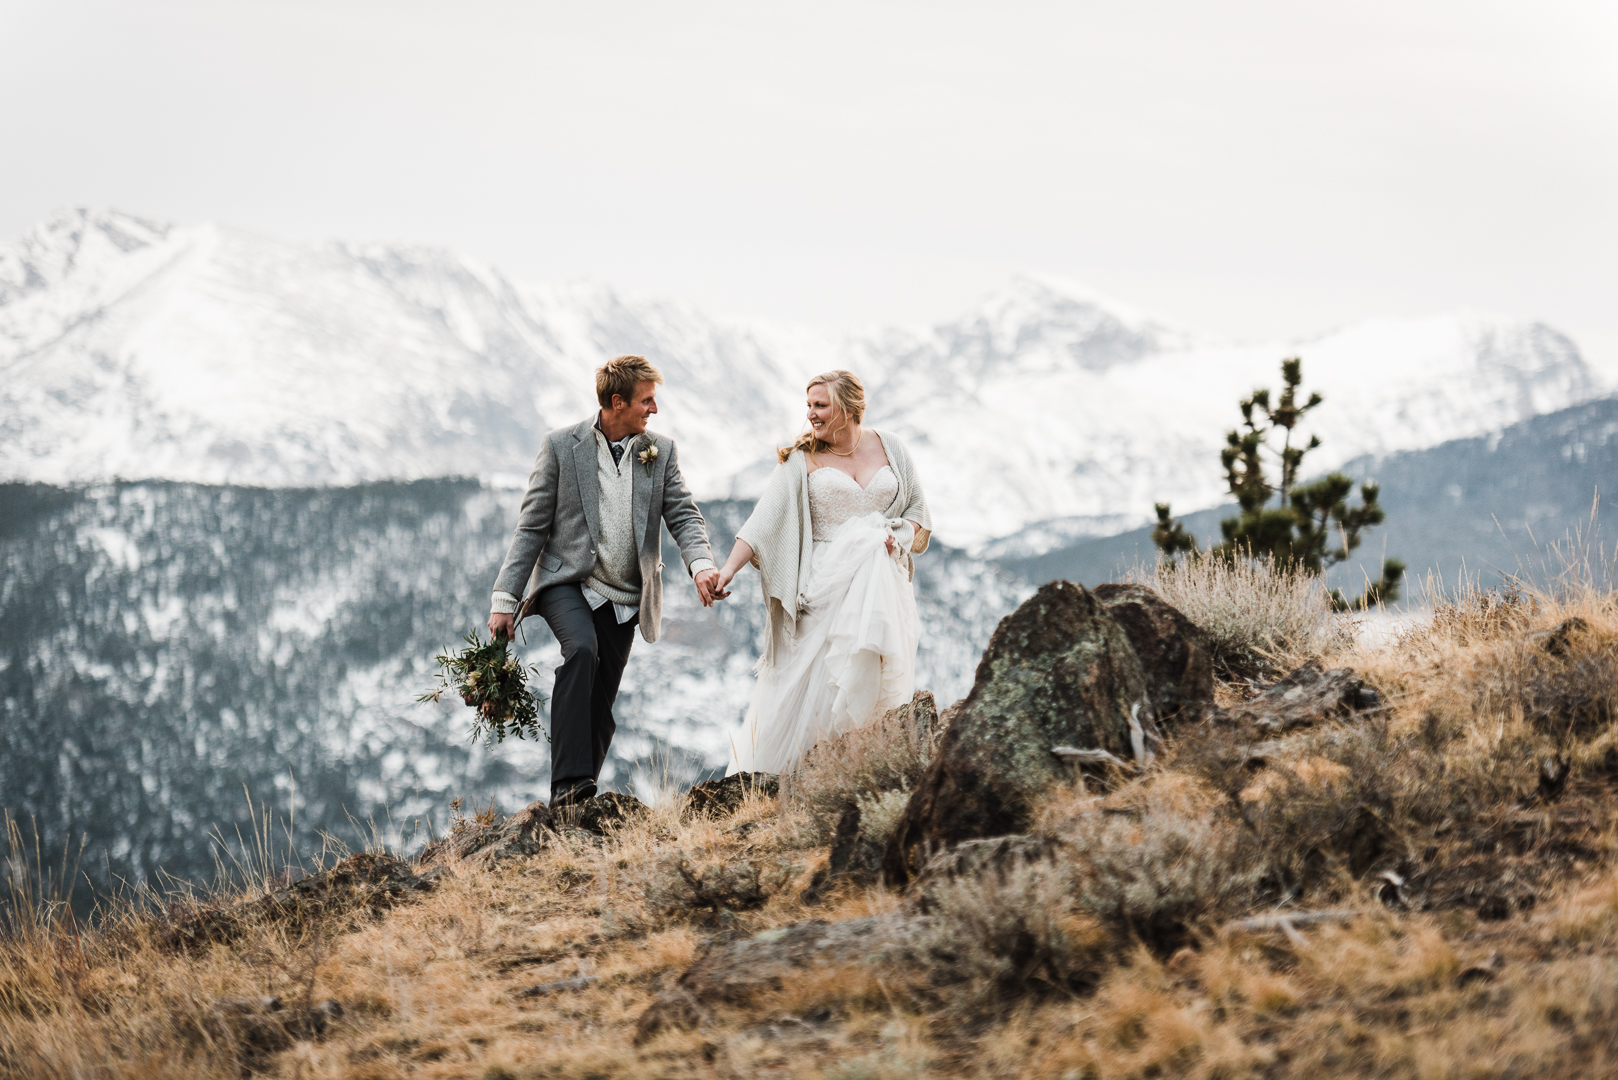 Colorado-Rocky-Mountain-National-Park-Elopement-Kelsie-Jordan(104 of 141).jpg